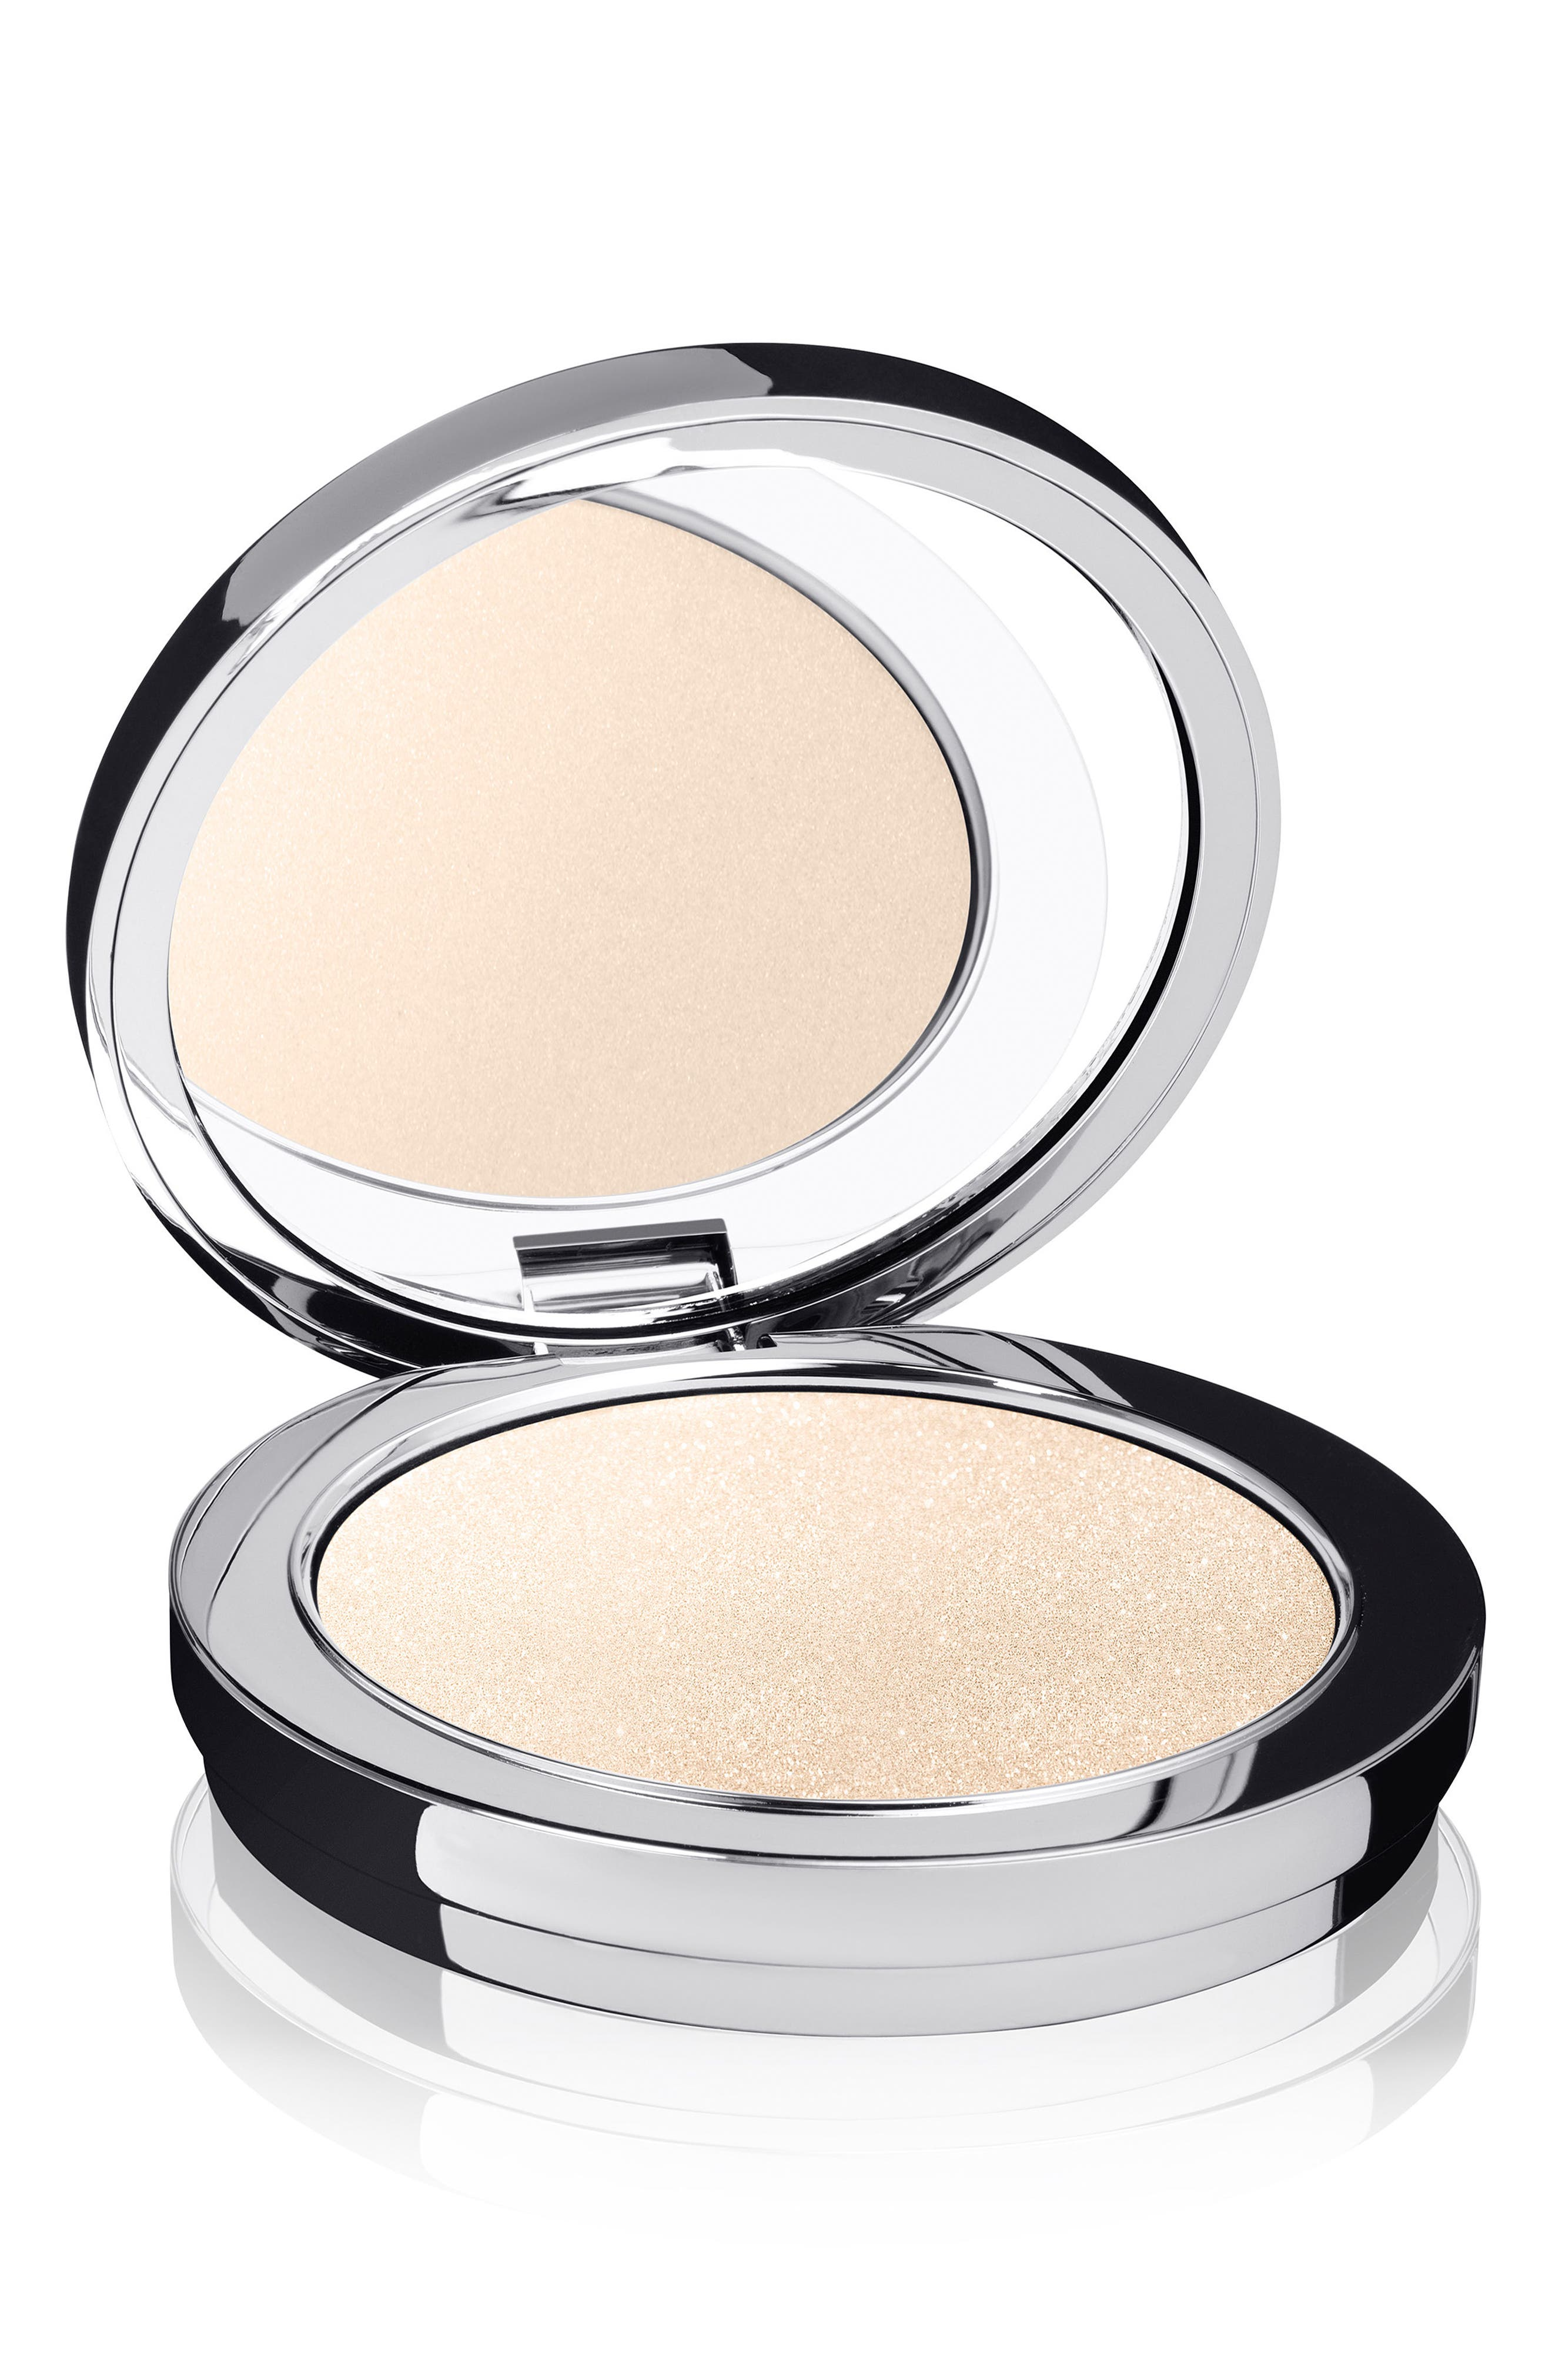 Main Image - SPACE.NK.apothecary Rodial Instaglam™ Deluxe Highlighting Powder Compact